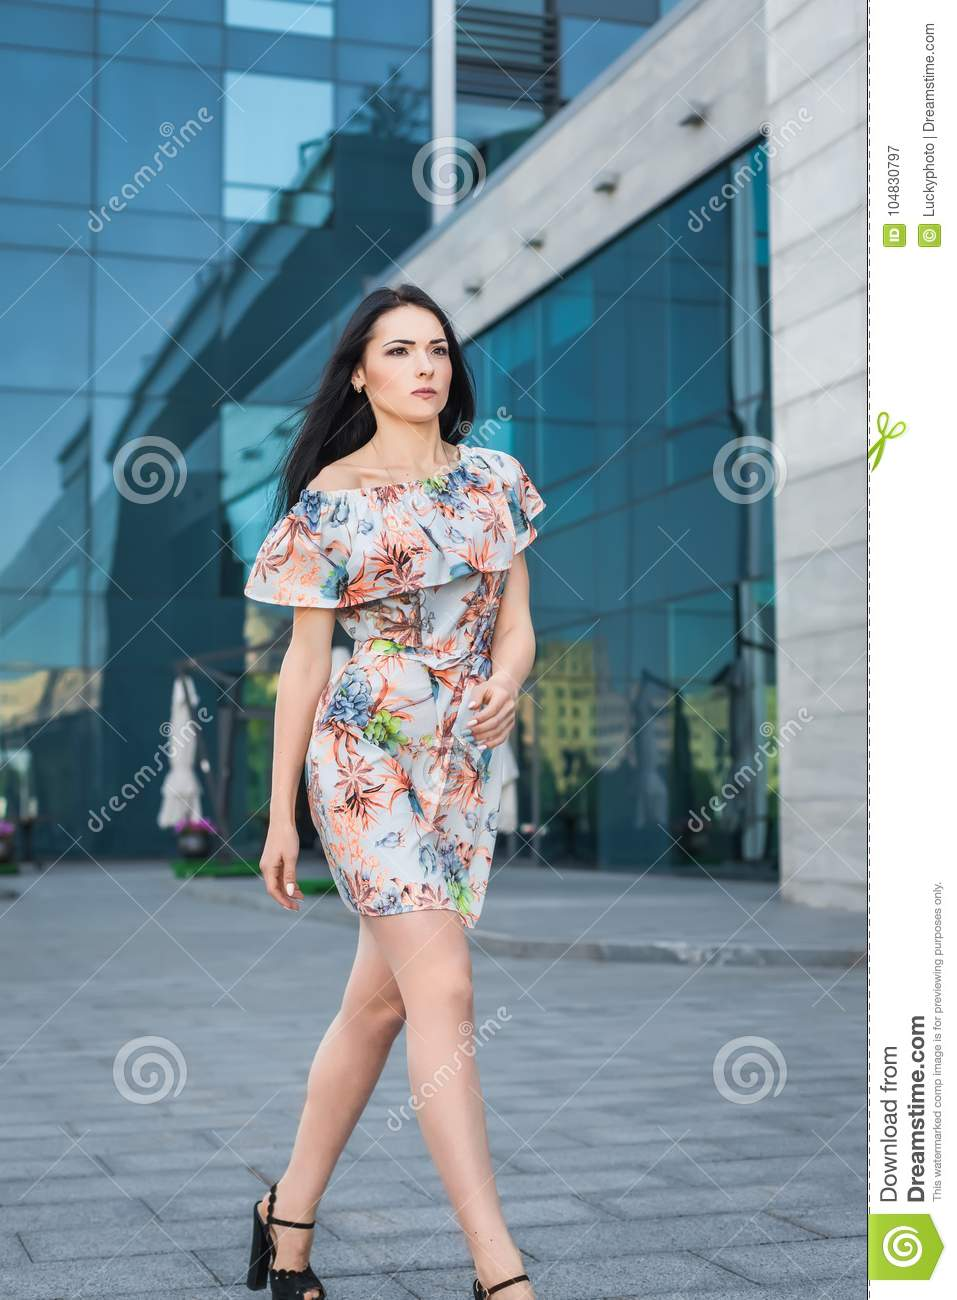 Young Model Walking In The Street Stock Image Image Of Dress